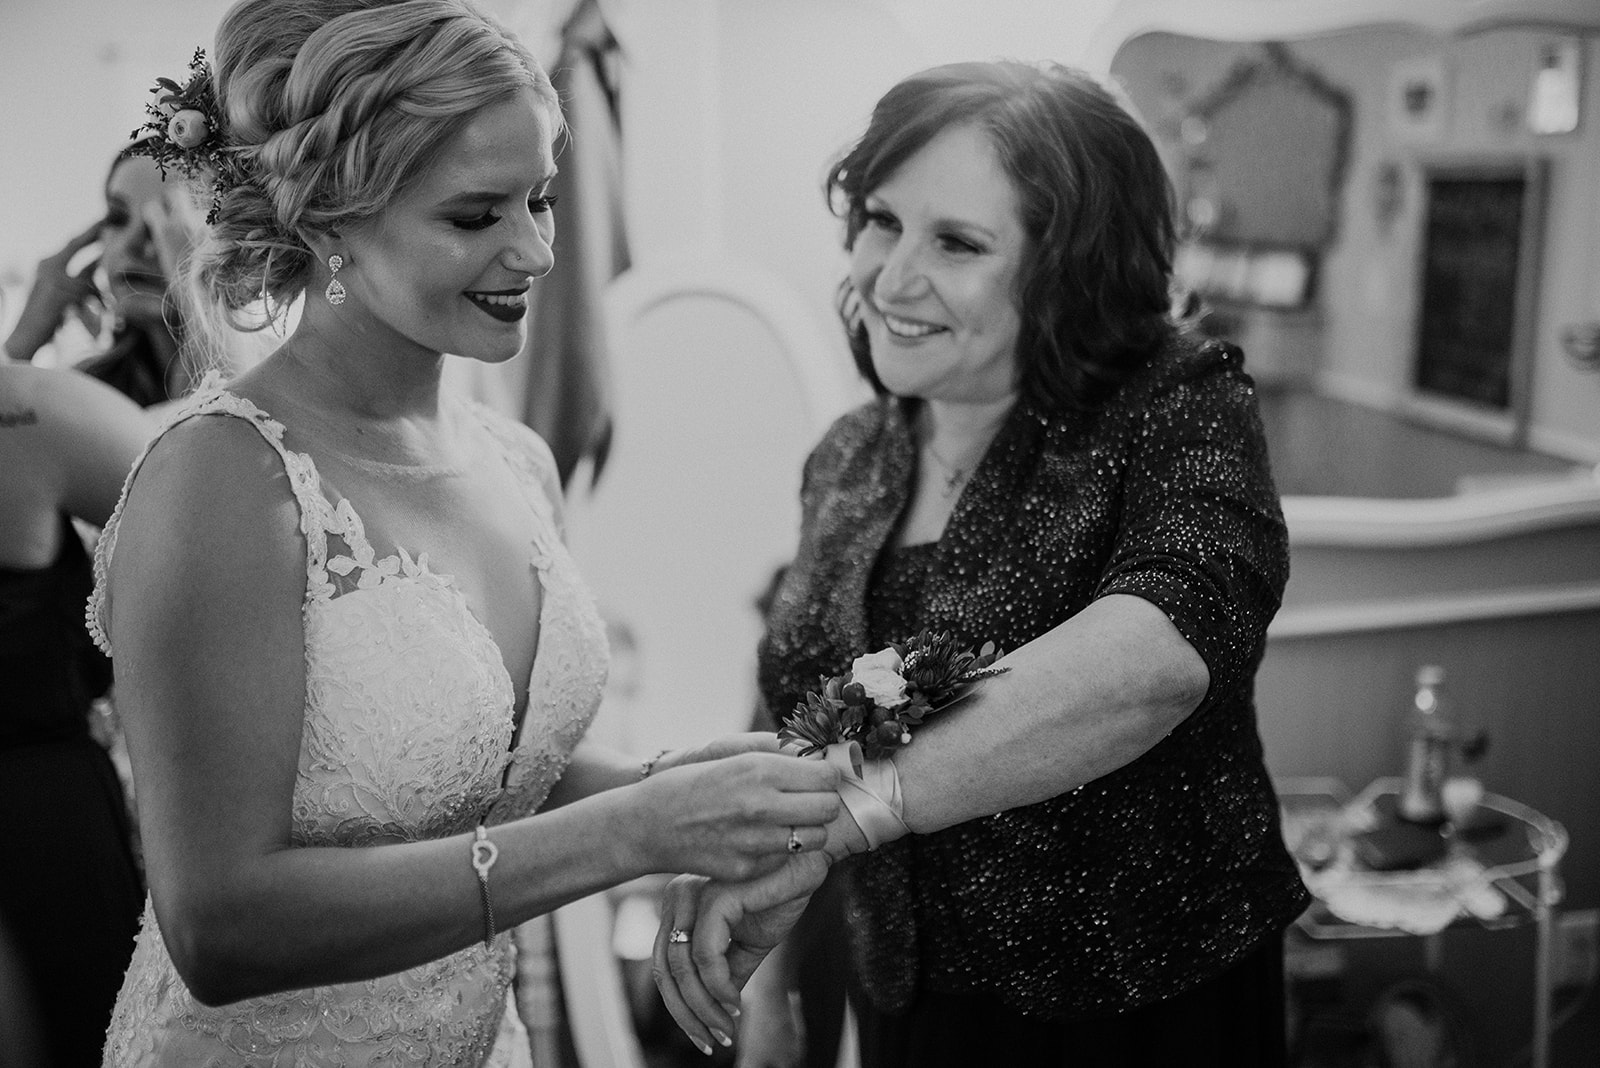 overthevineswisconsinwedding_0443.jpg